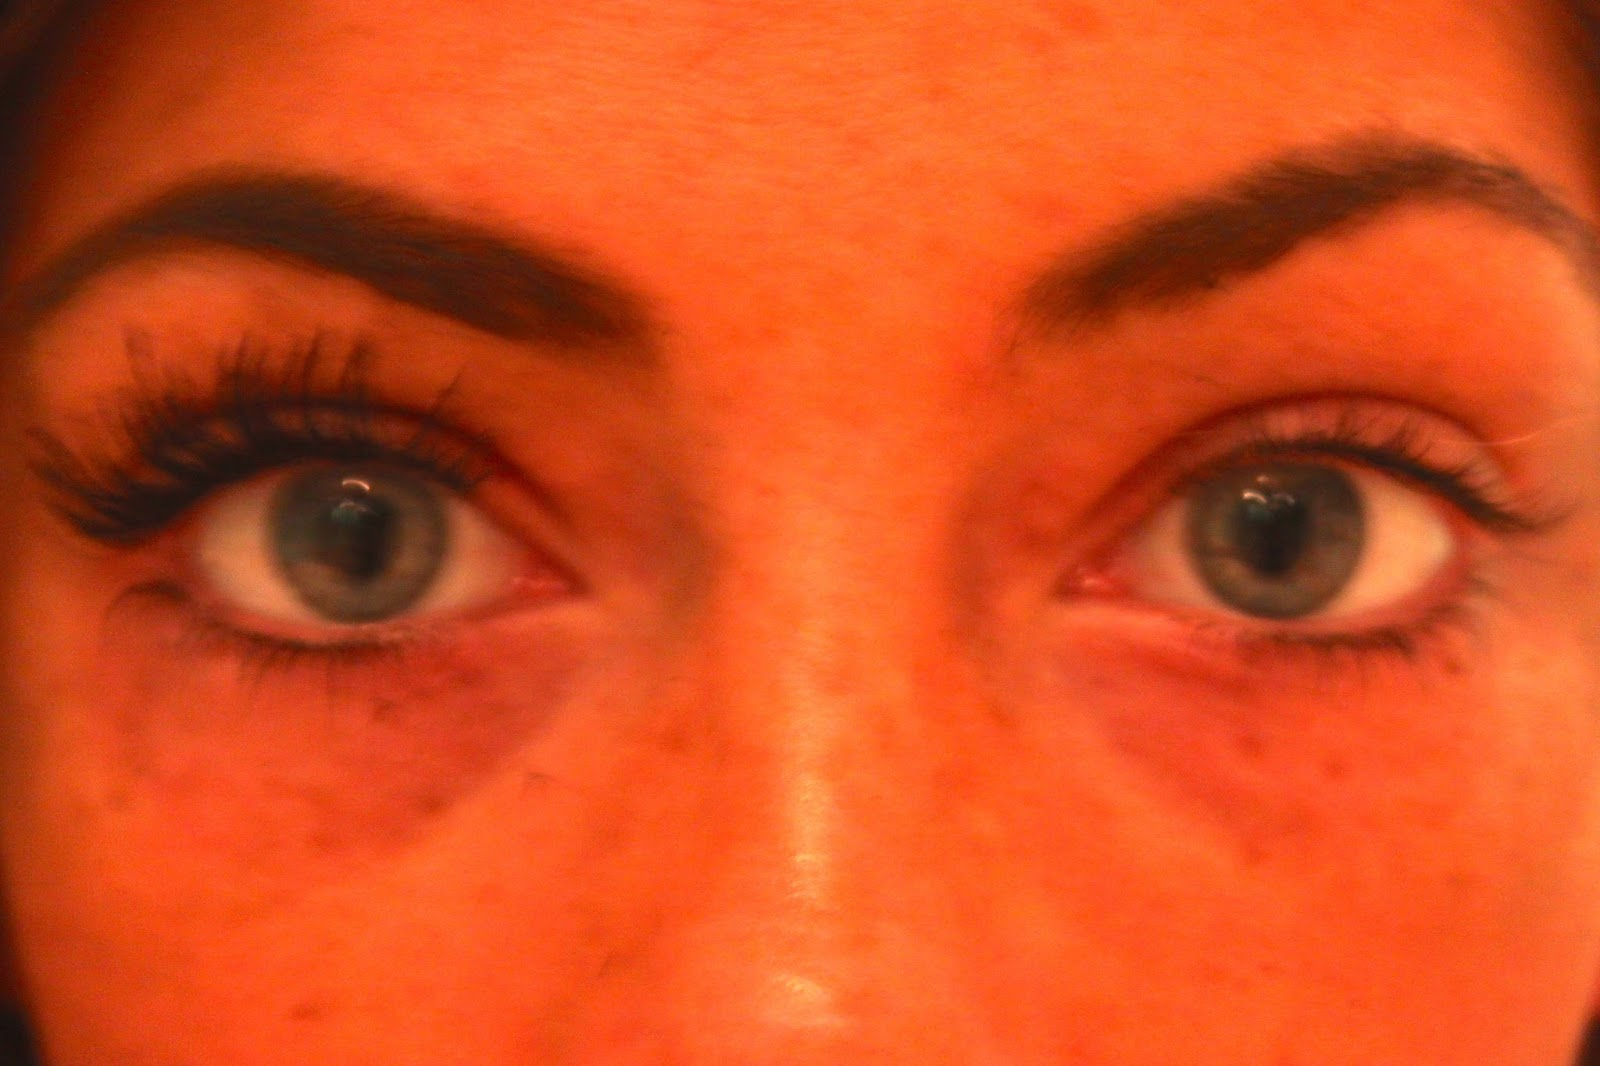 Younique Moonstruck 3D Fibre Lashes Results from one coat